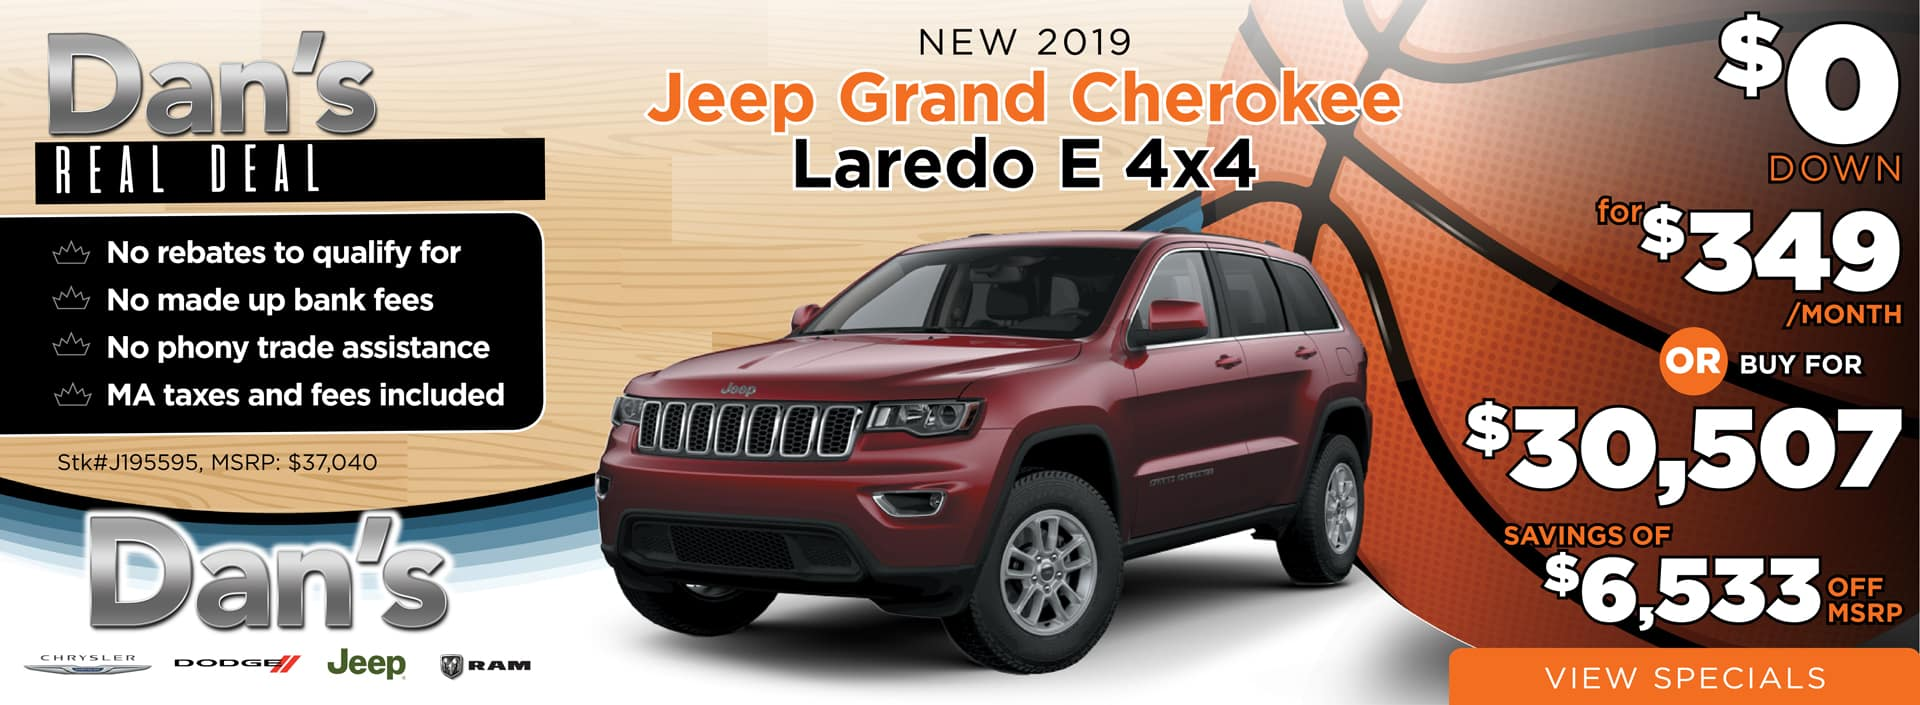 2019 Jeep_Grand Cherokee Laredo